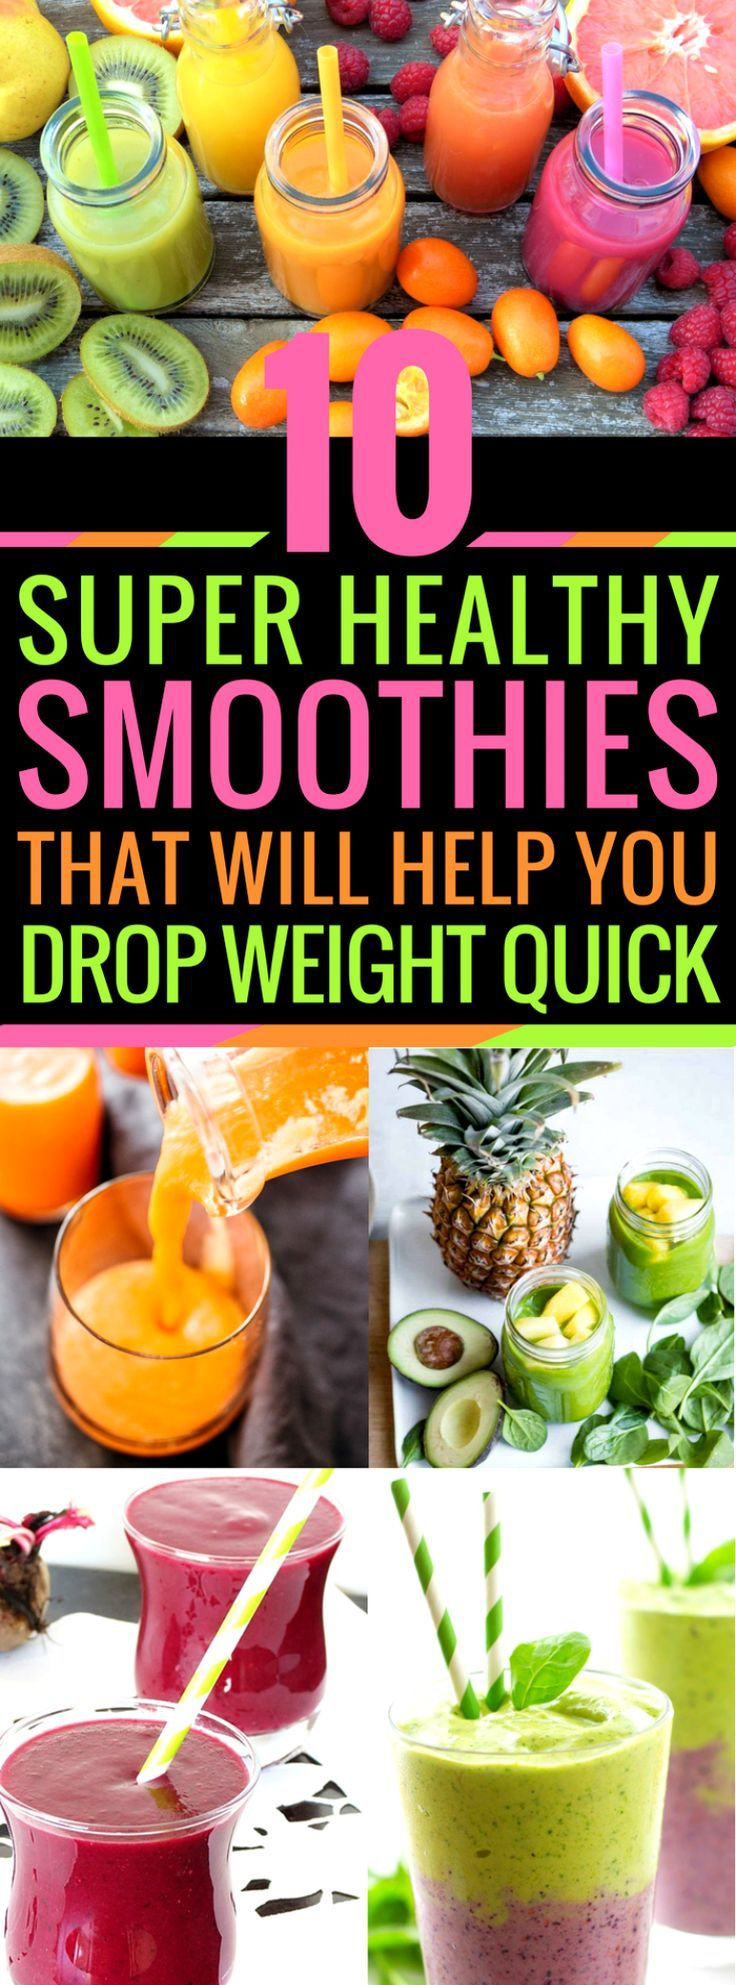 20 Weight Loss Smoothies To Make You Slim Down In A Flash  food